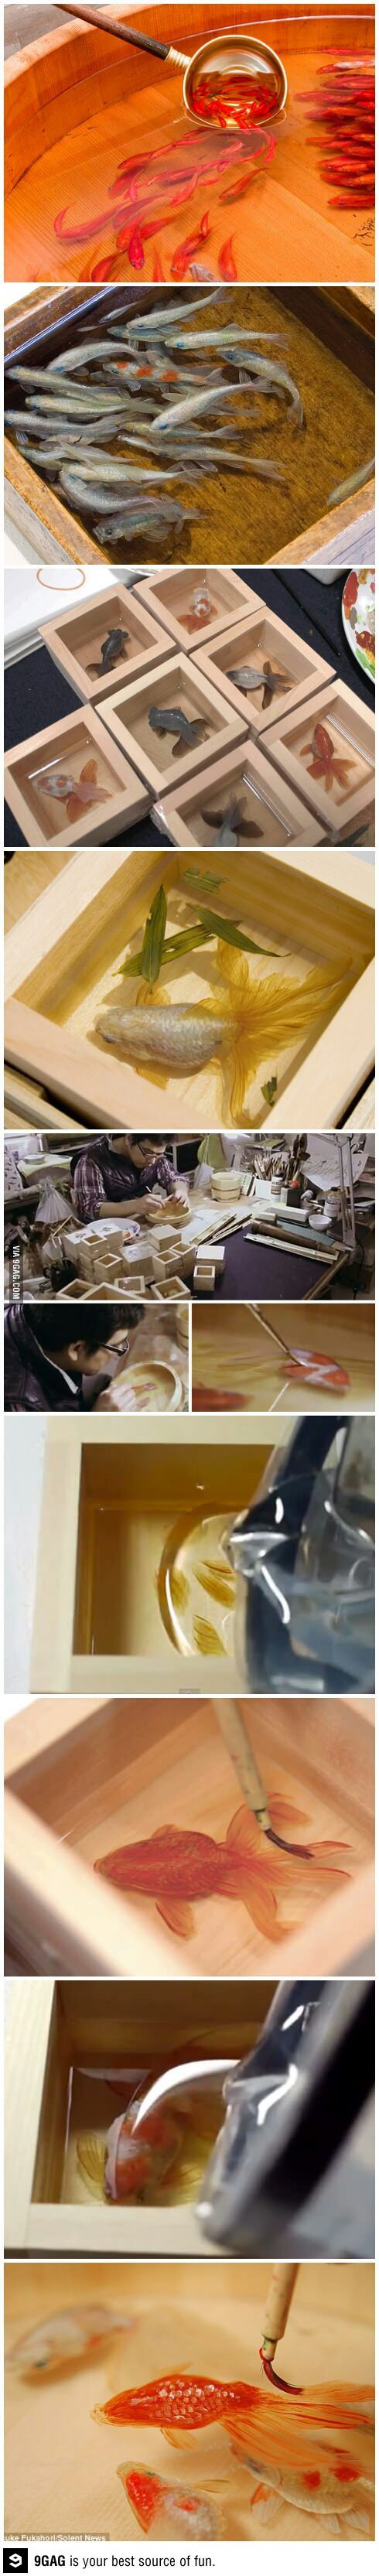 Amazing 3D paintings.  Layers of resin and paint create genuinely 3 dimensional paintings.